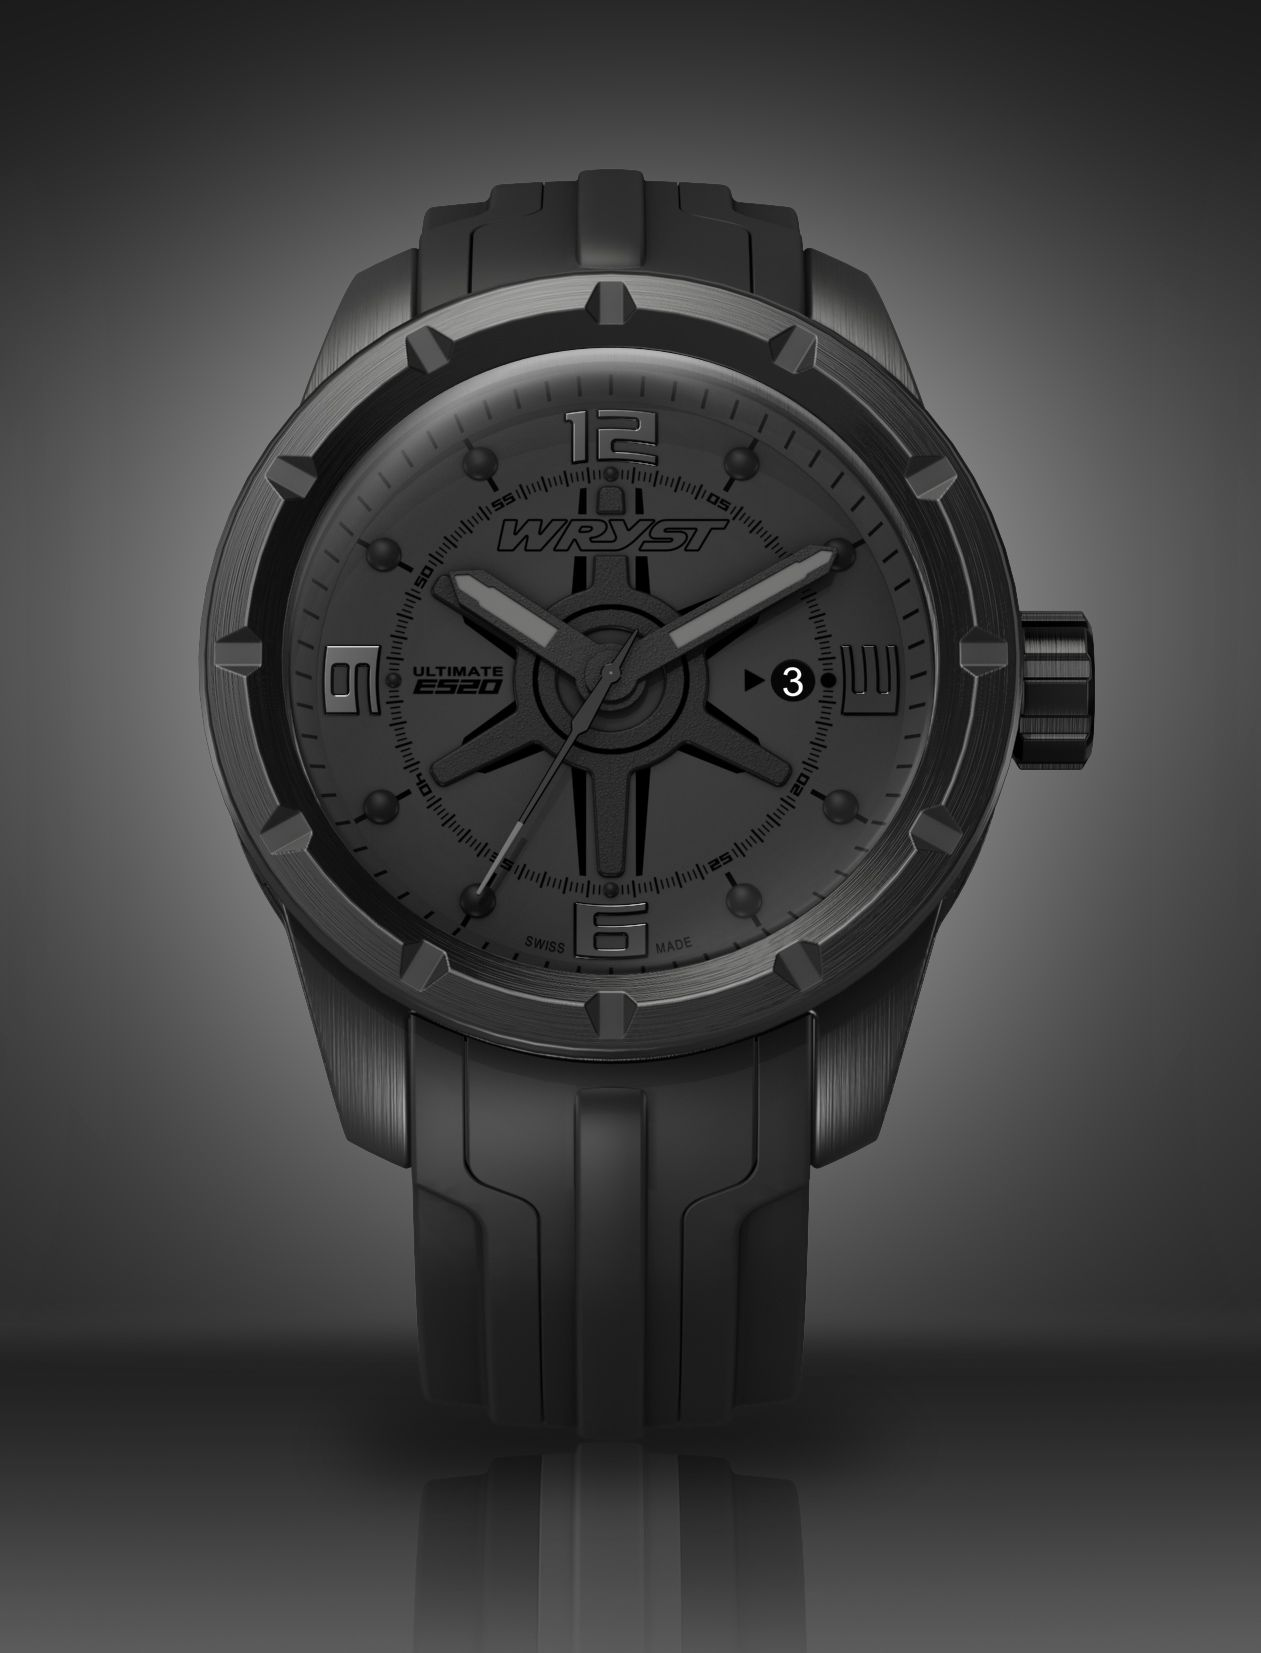 black watch wryst ultimate es20 black watches all black and all black swiss watch for men swiss made